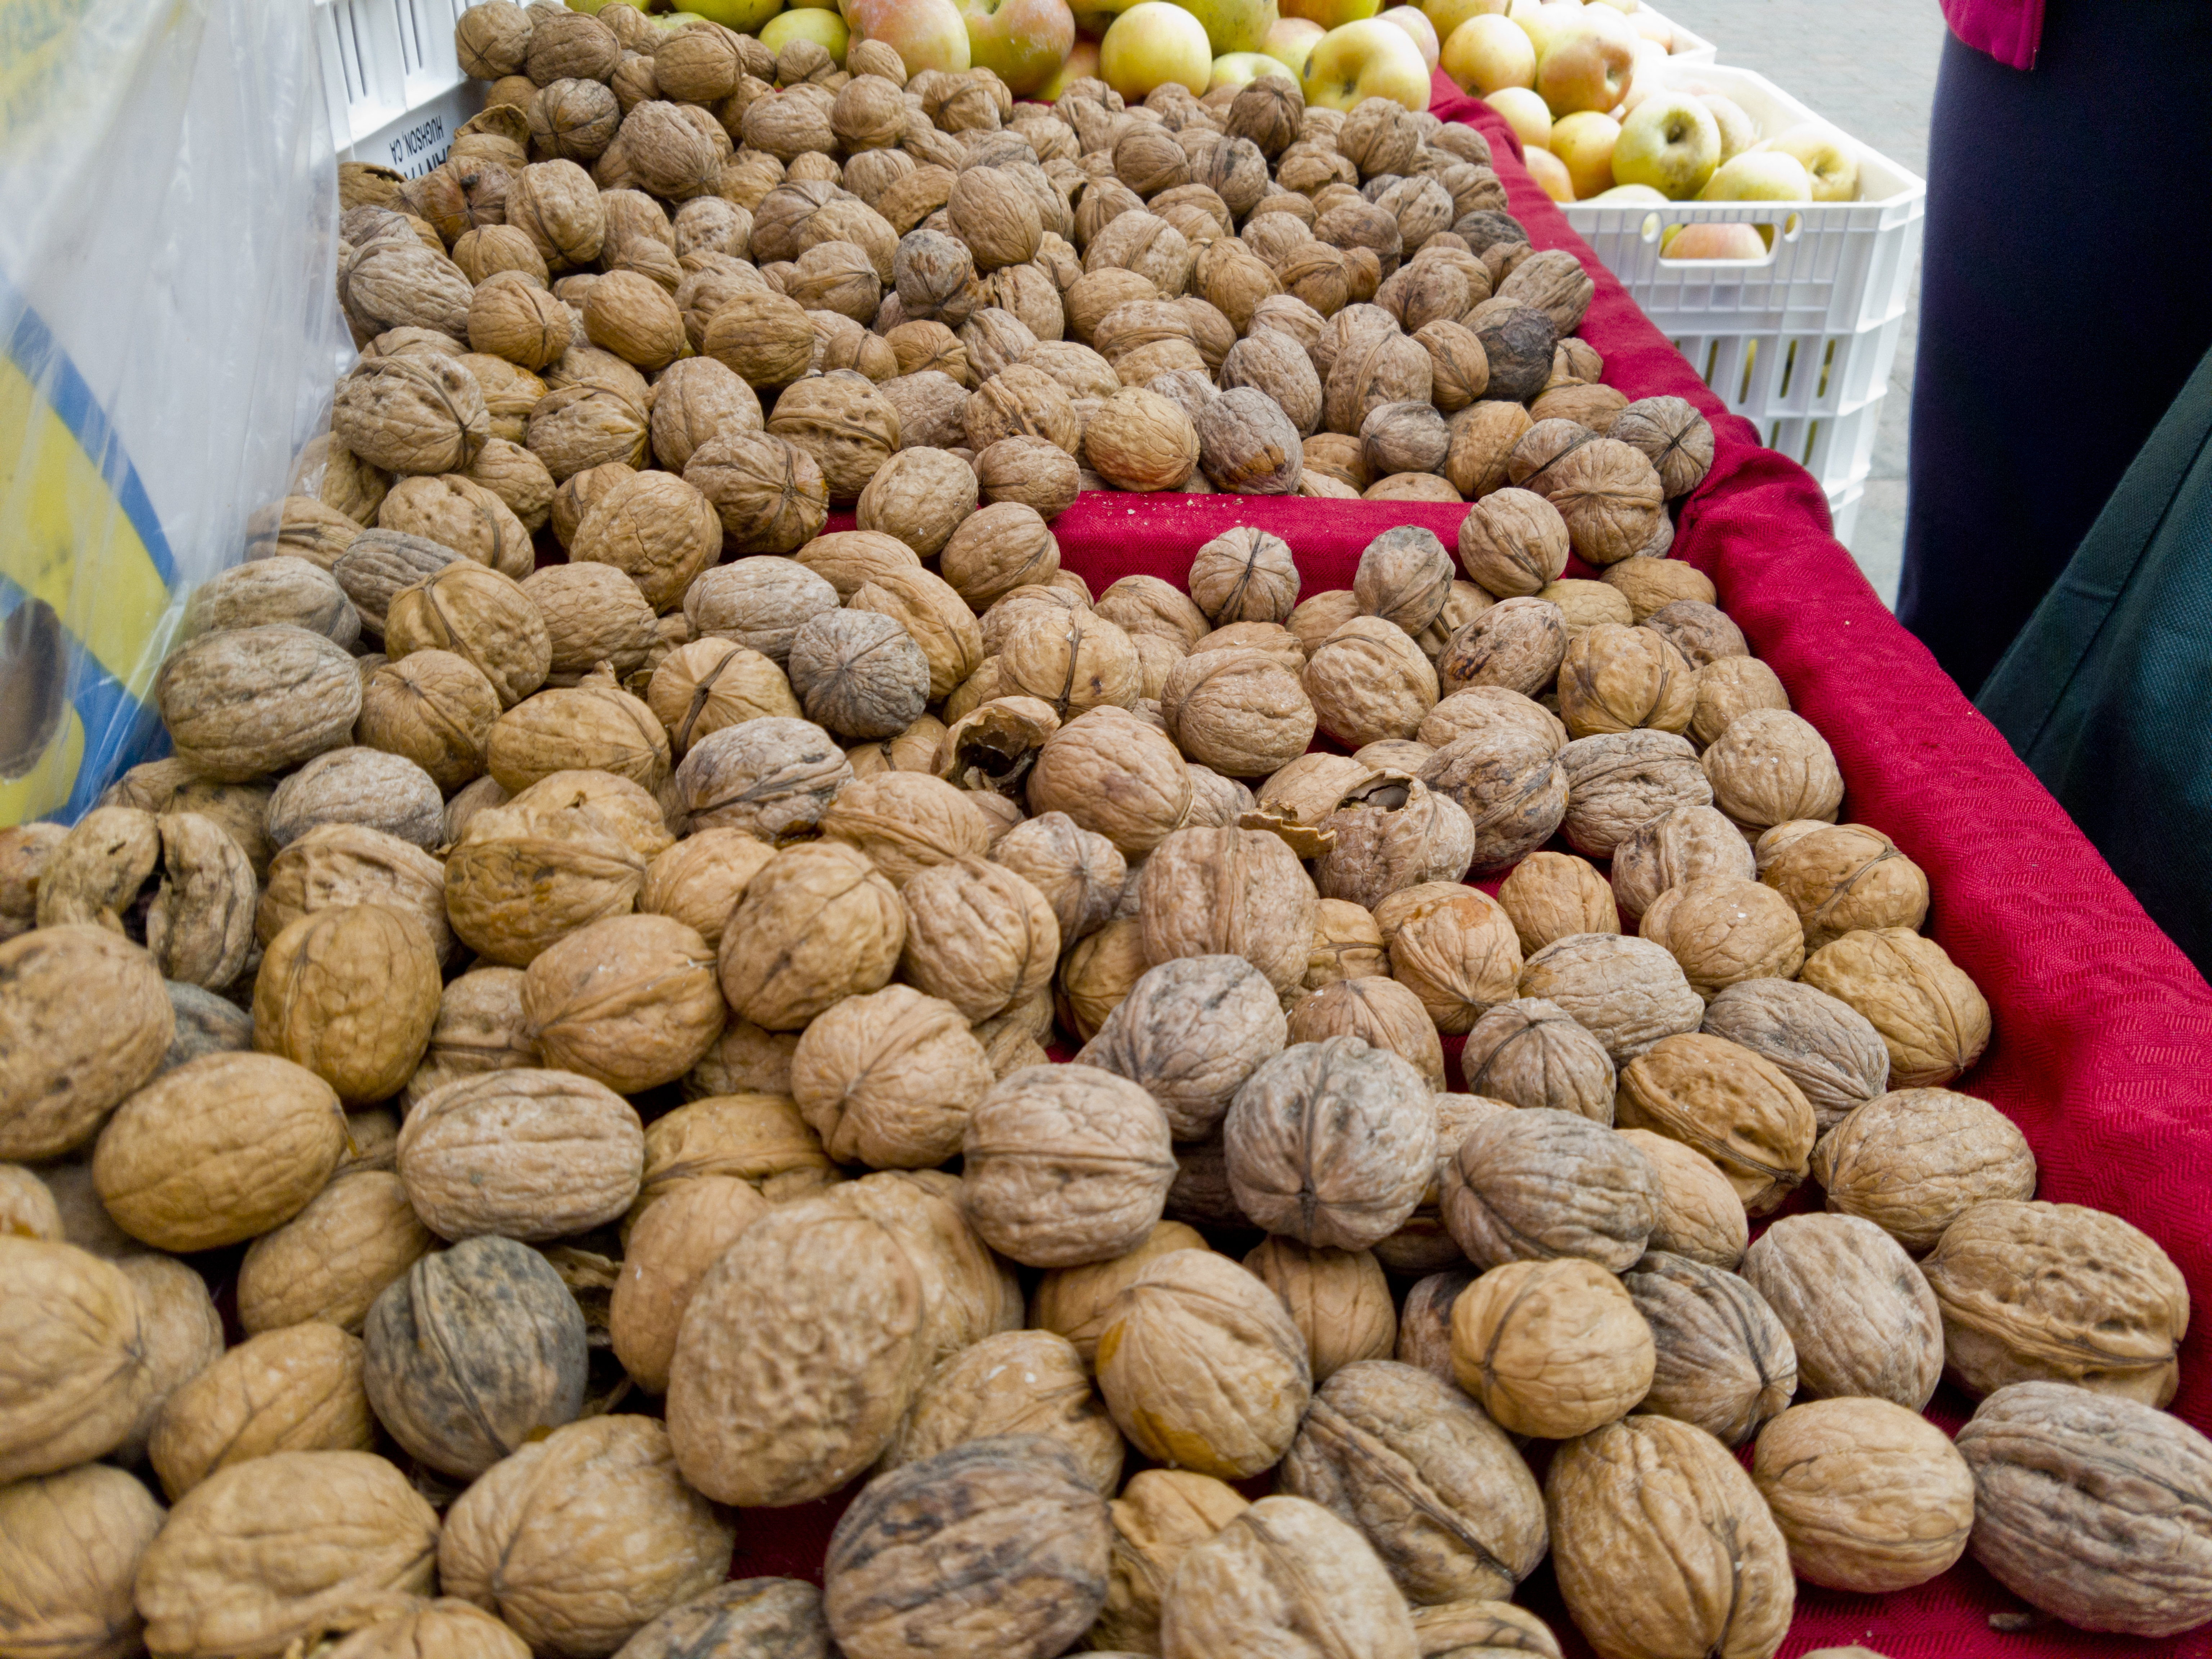 10 Reasons to Go Nuts for Walnuts